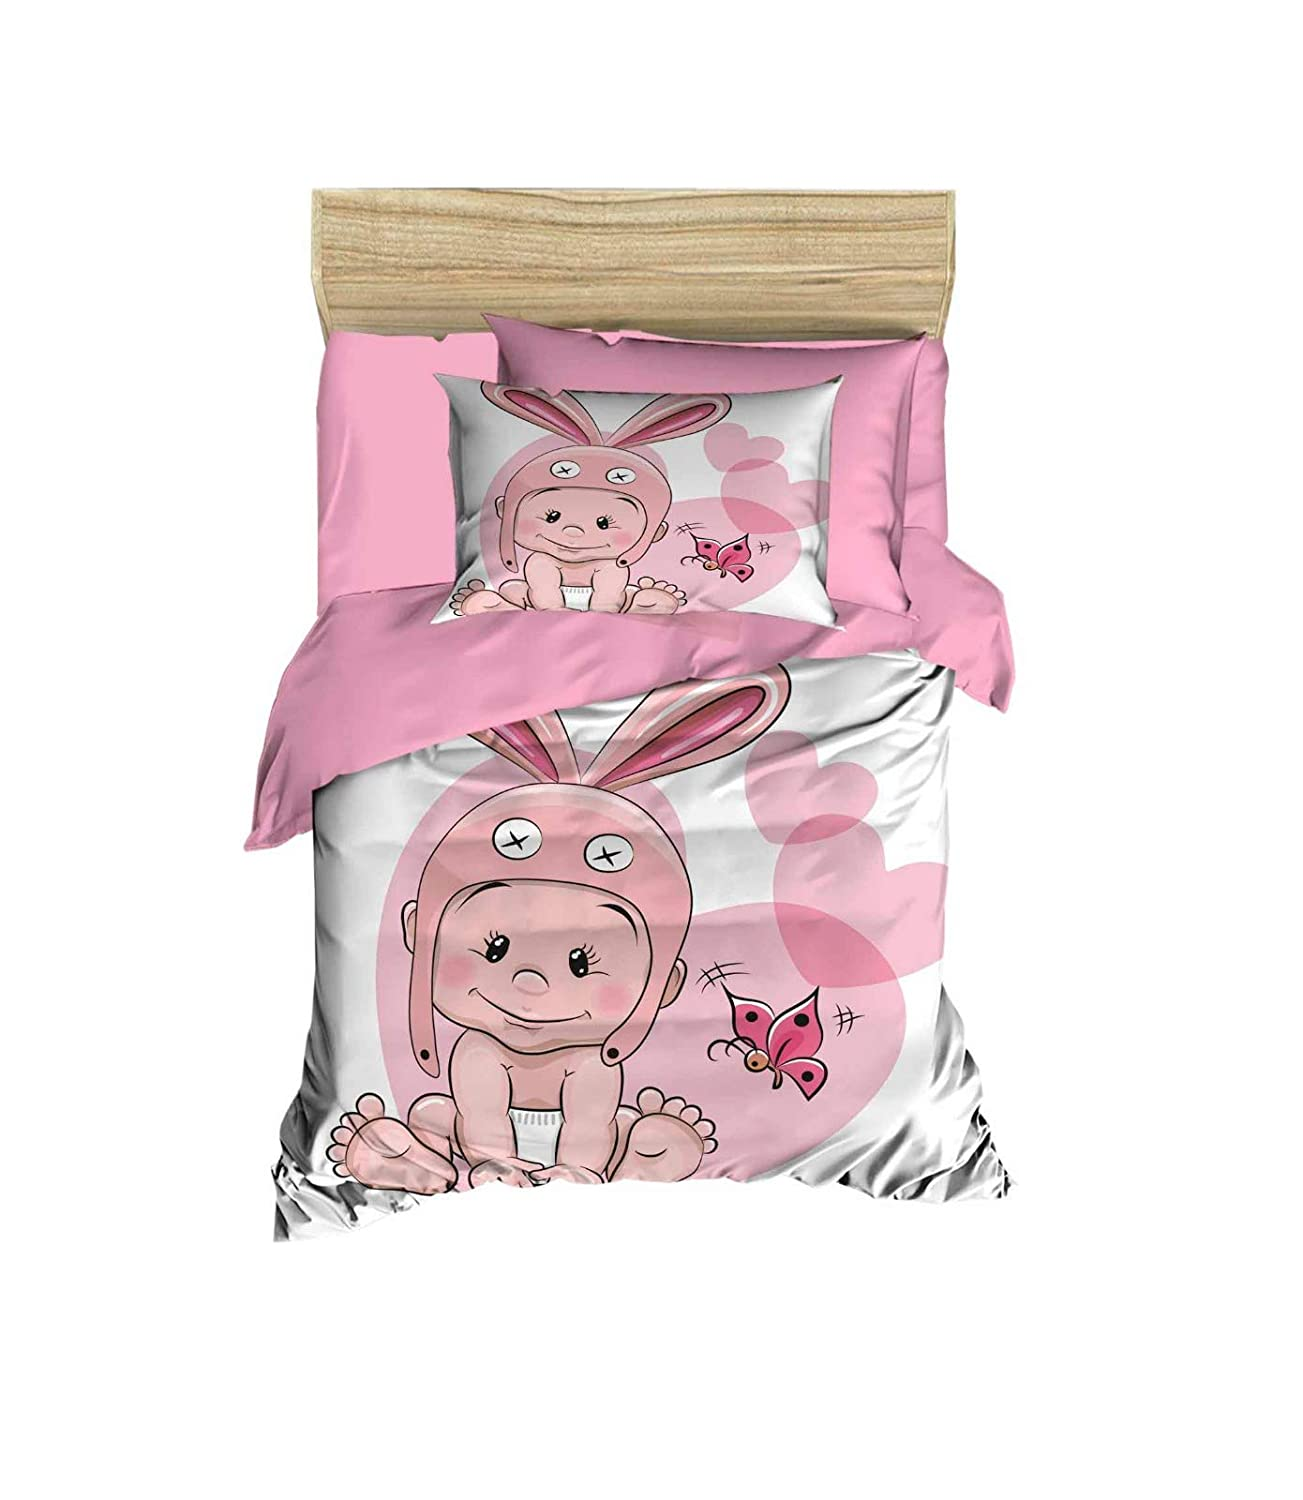 Pillowcase Jungle Babies Child Toddler Cot Size 100/% Cotton